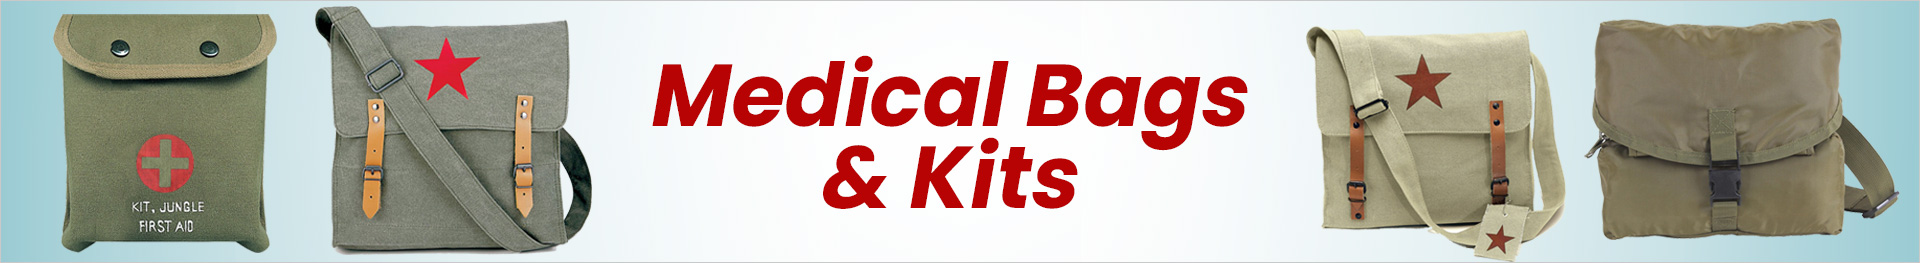 Wholesale Medical Bags